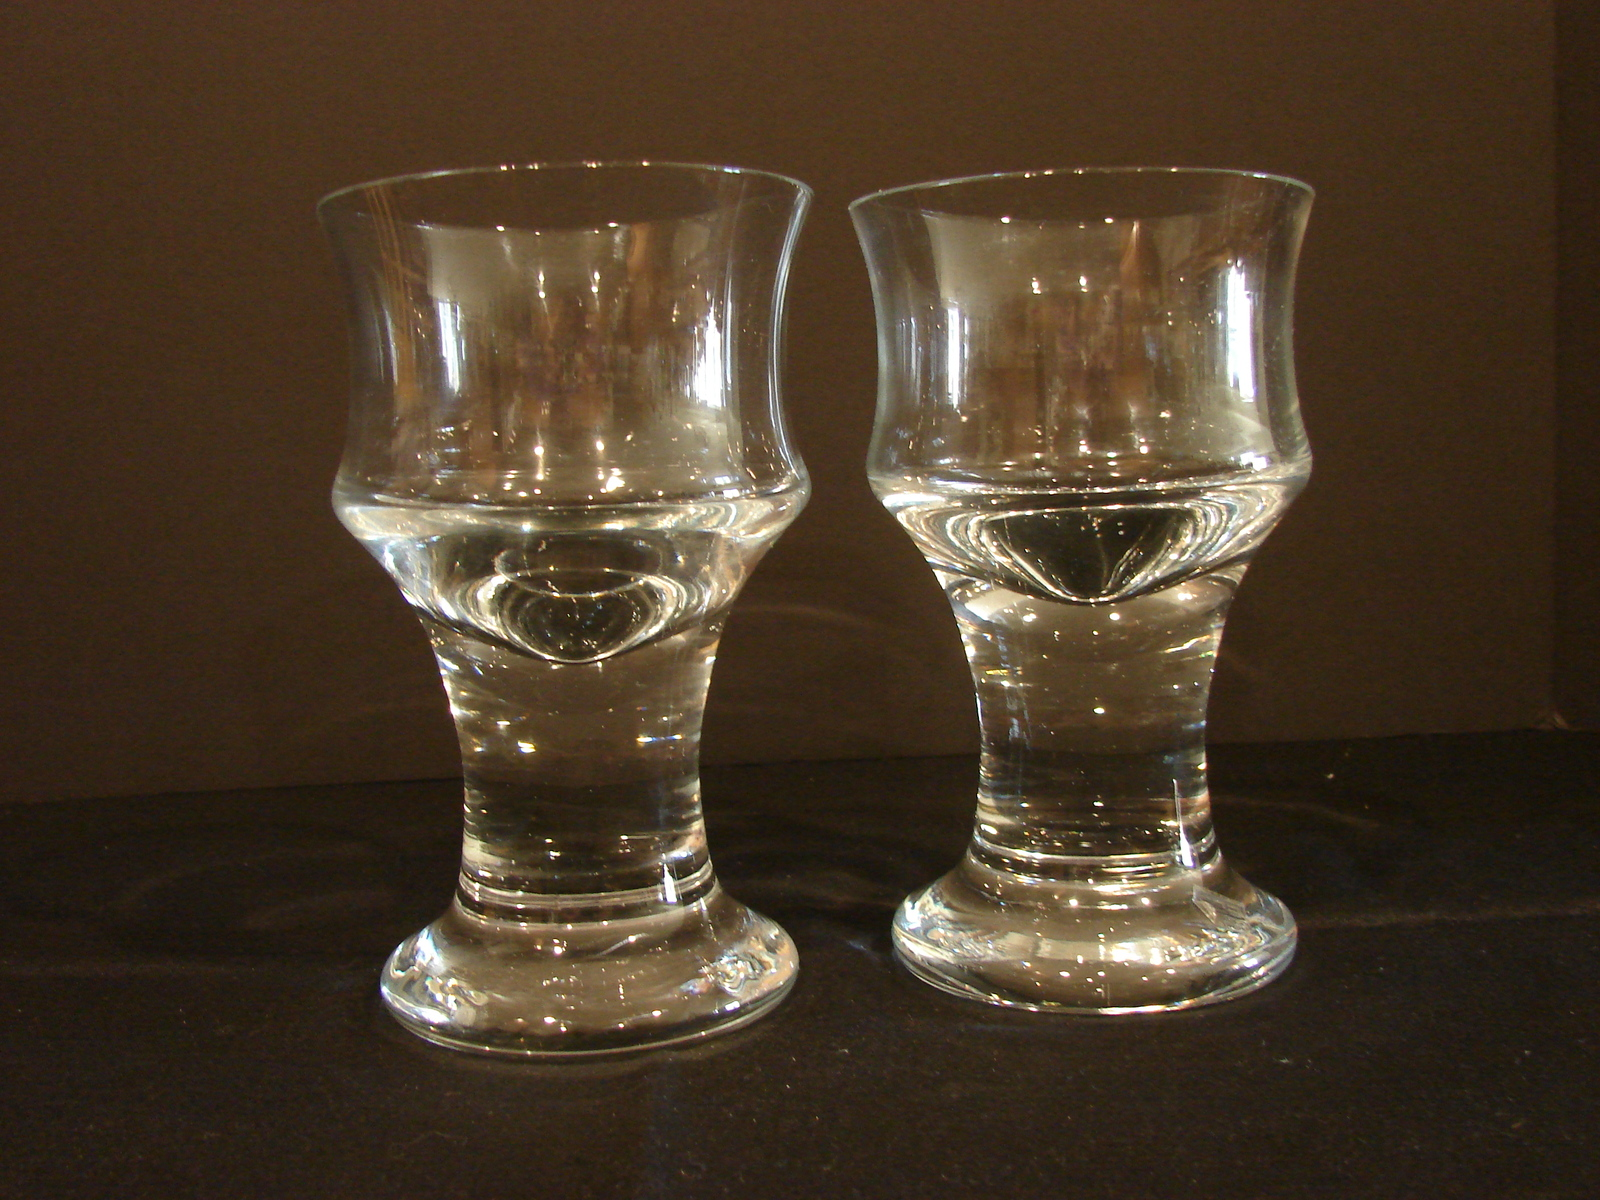 Primary image for  Pair of Sea Glasbruk Orrefors Kosta Boda Sweden Glass Tea /Votive Candle Holder